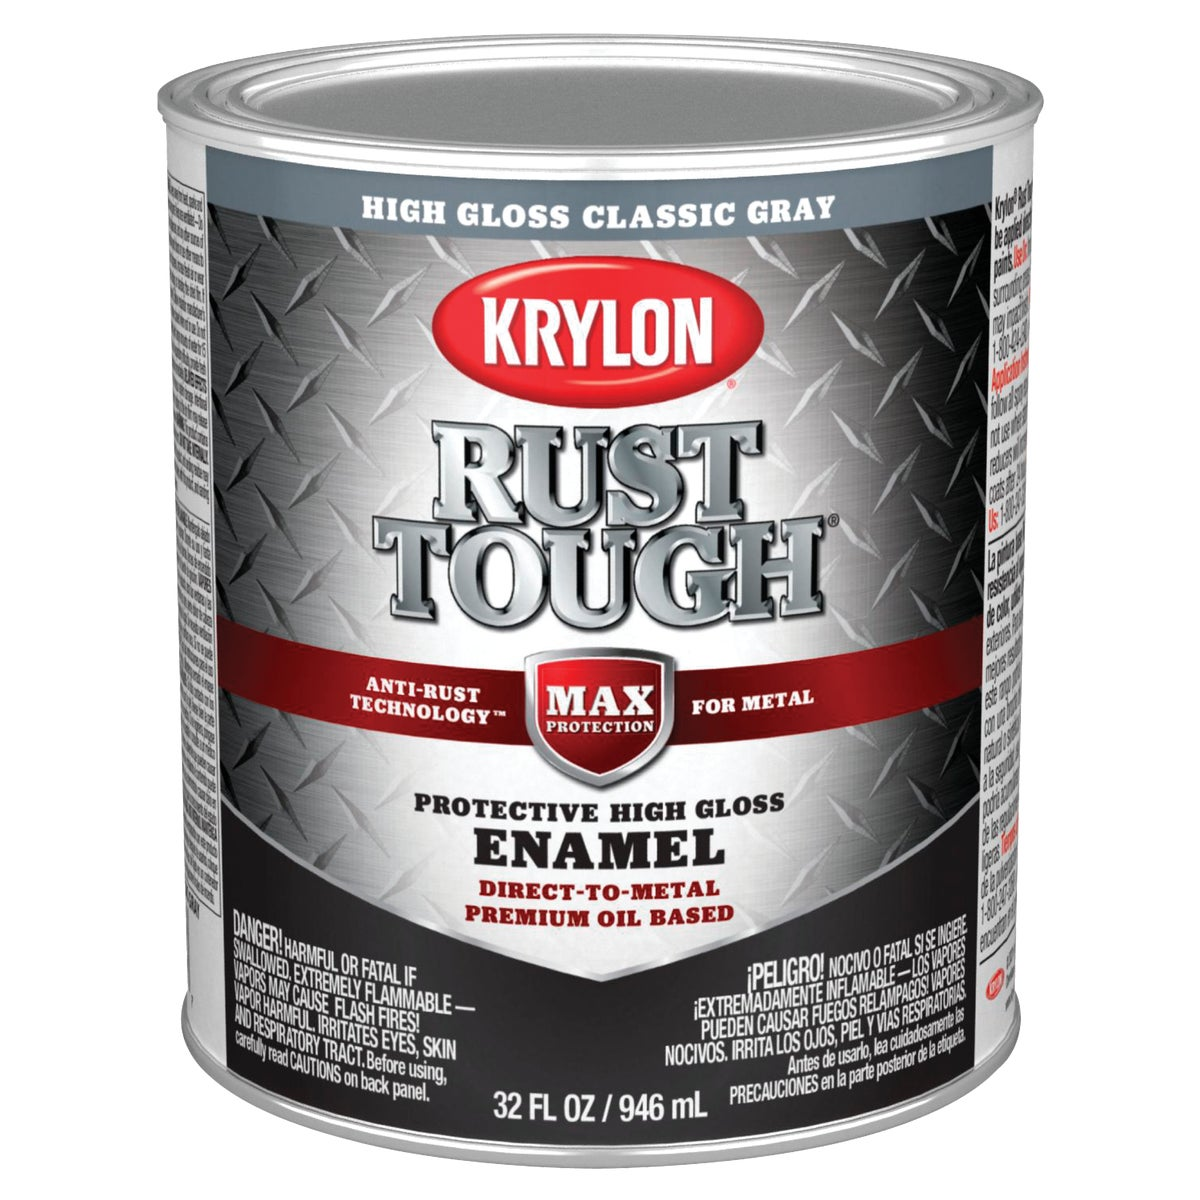 GLOSS GRAY RUST ENAMEL - 044.0021834.005 by Valspar Corp